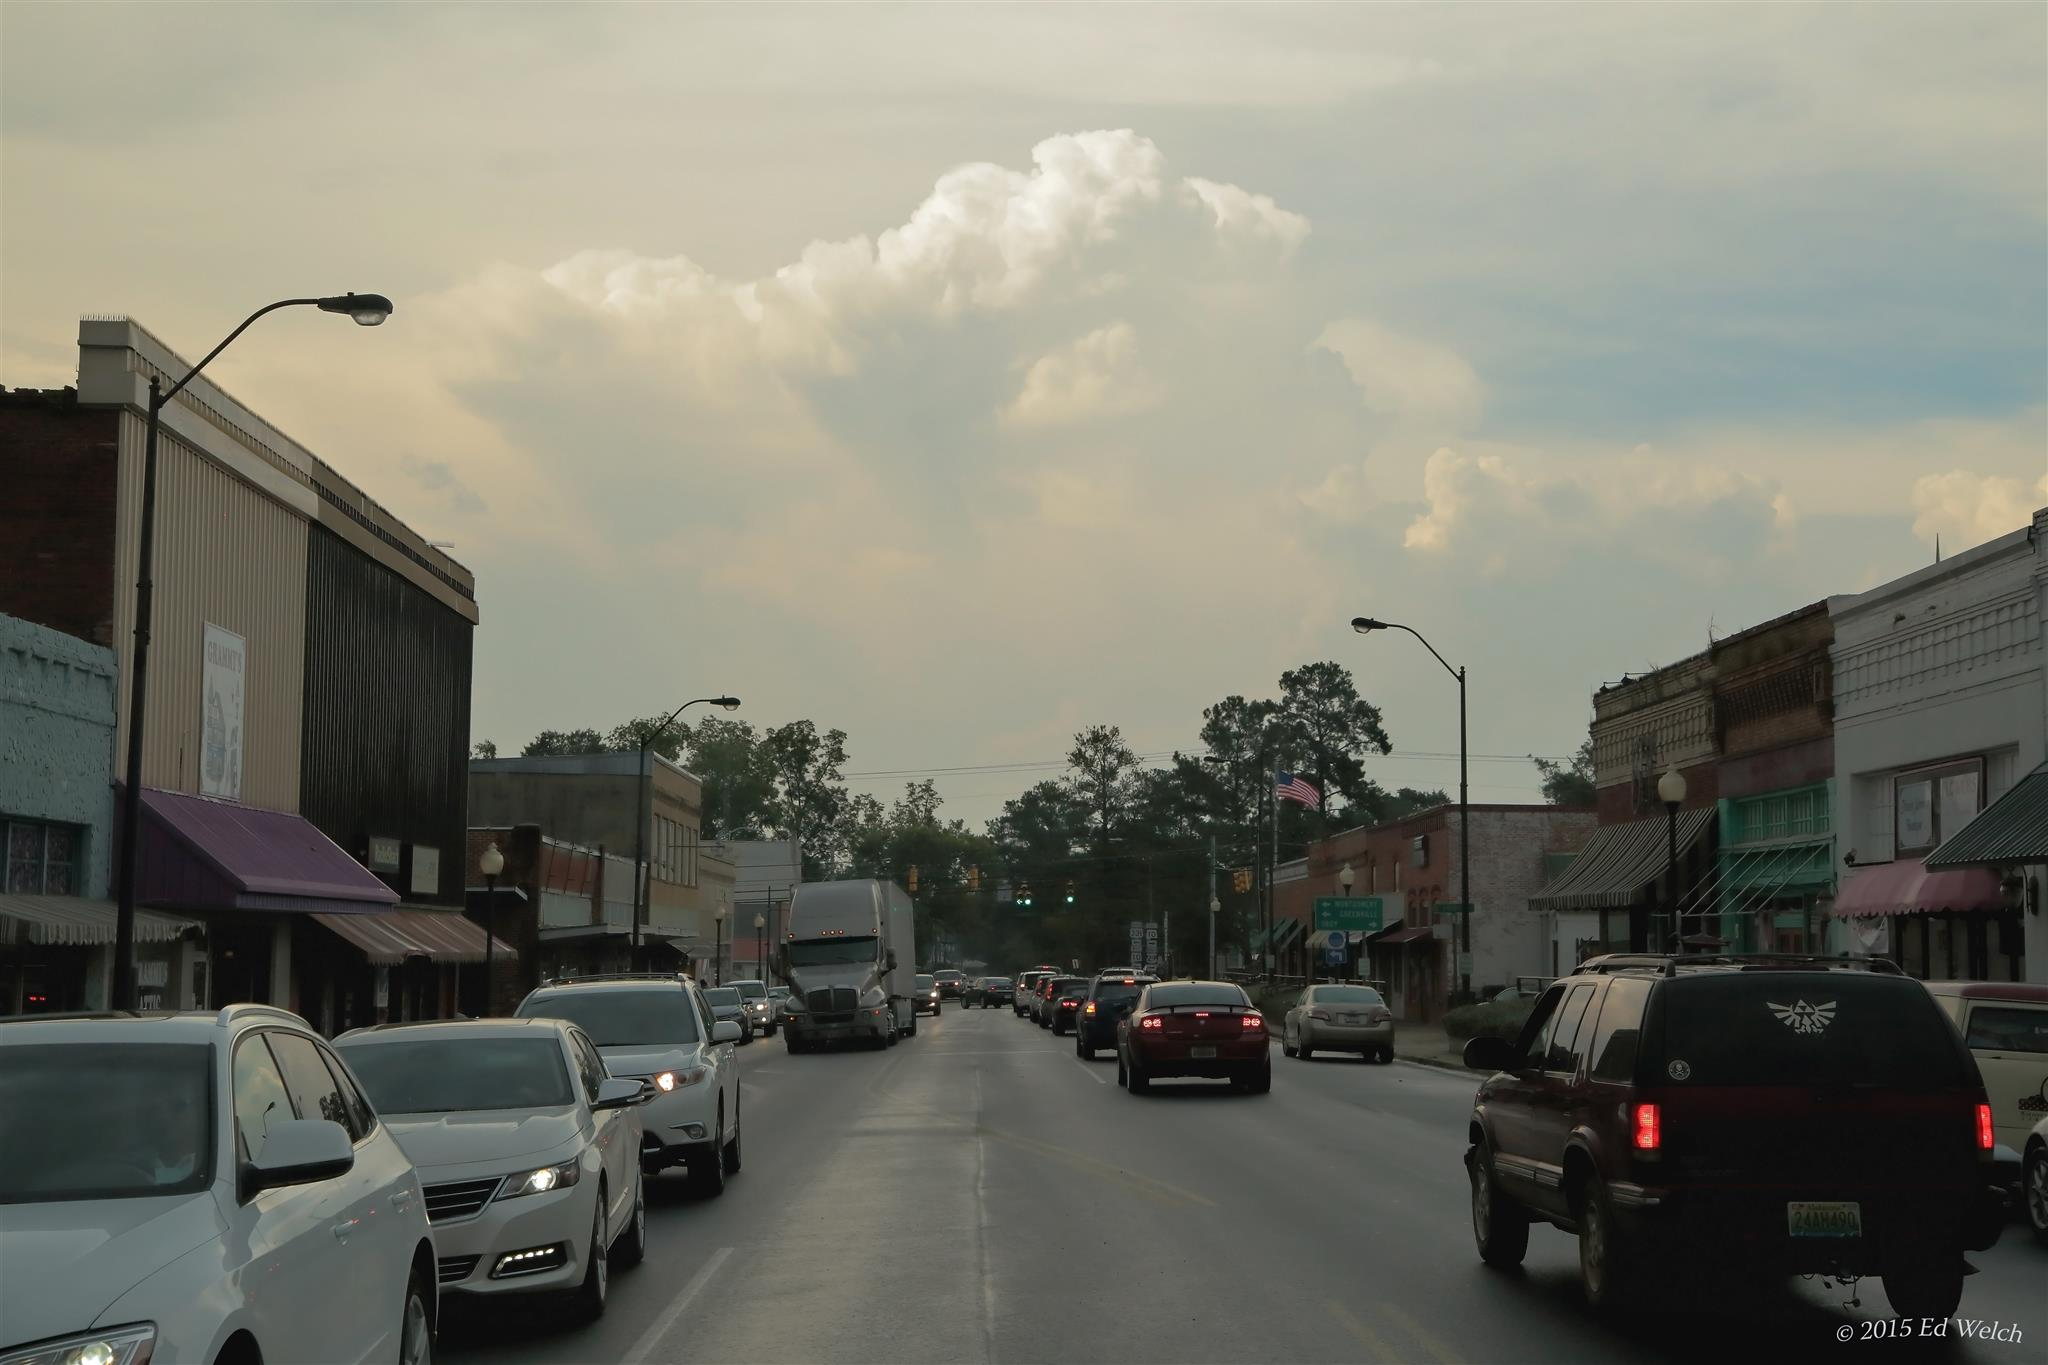 August 7, 2015 - Downtown after a storm.